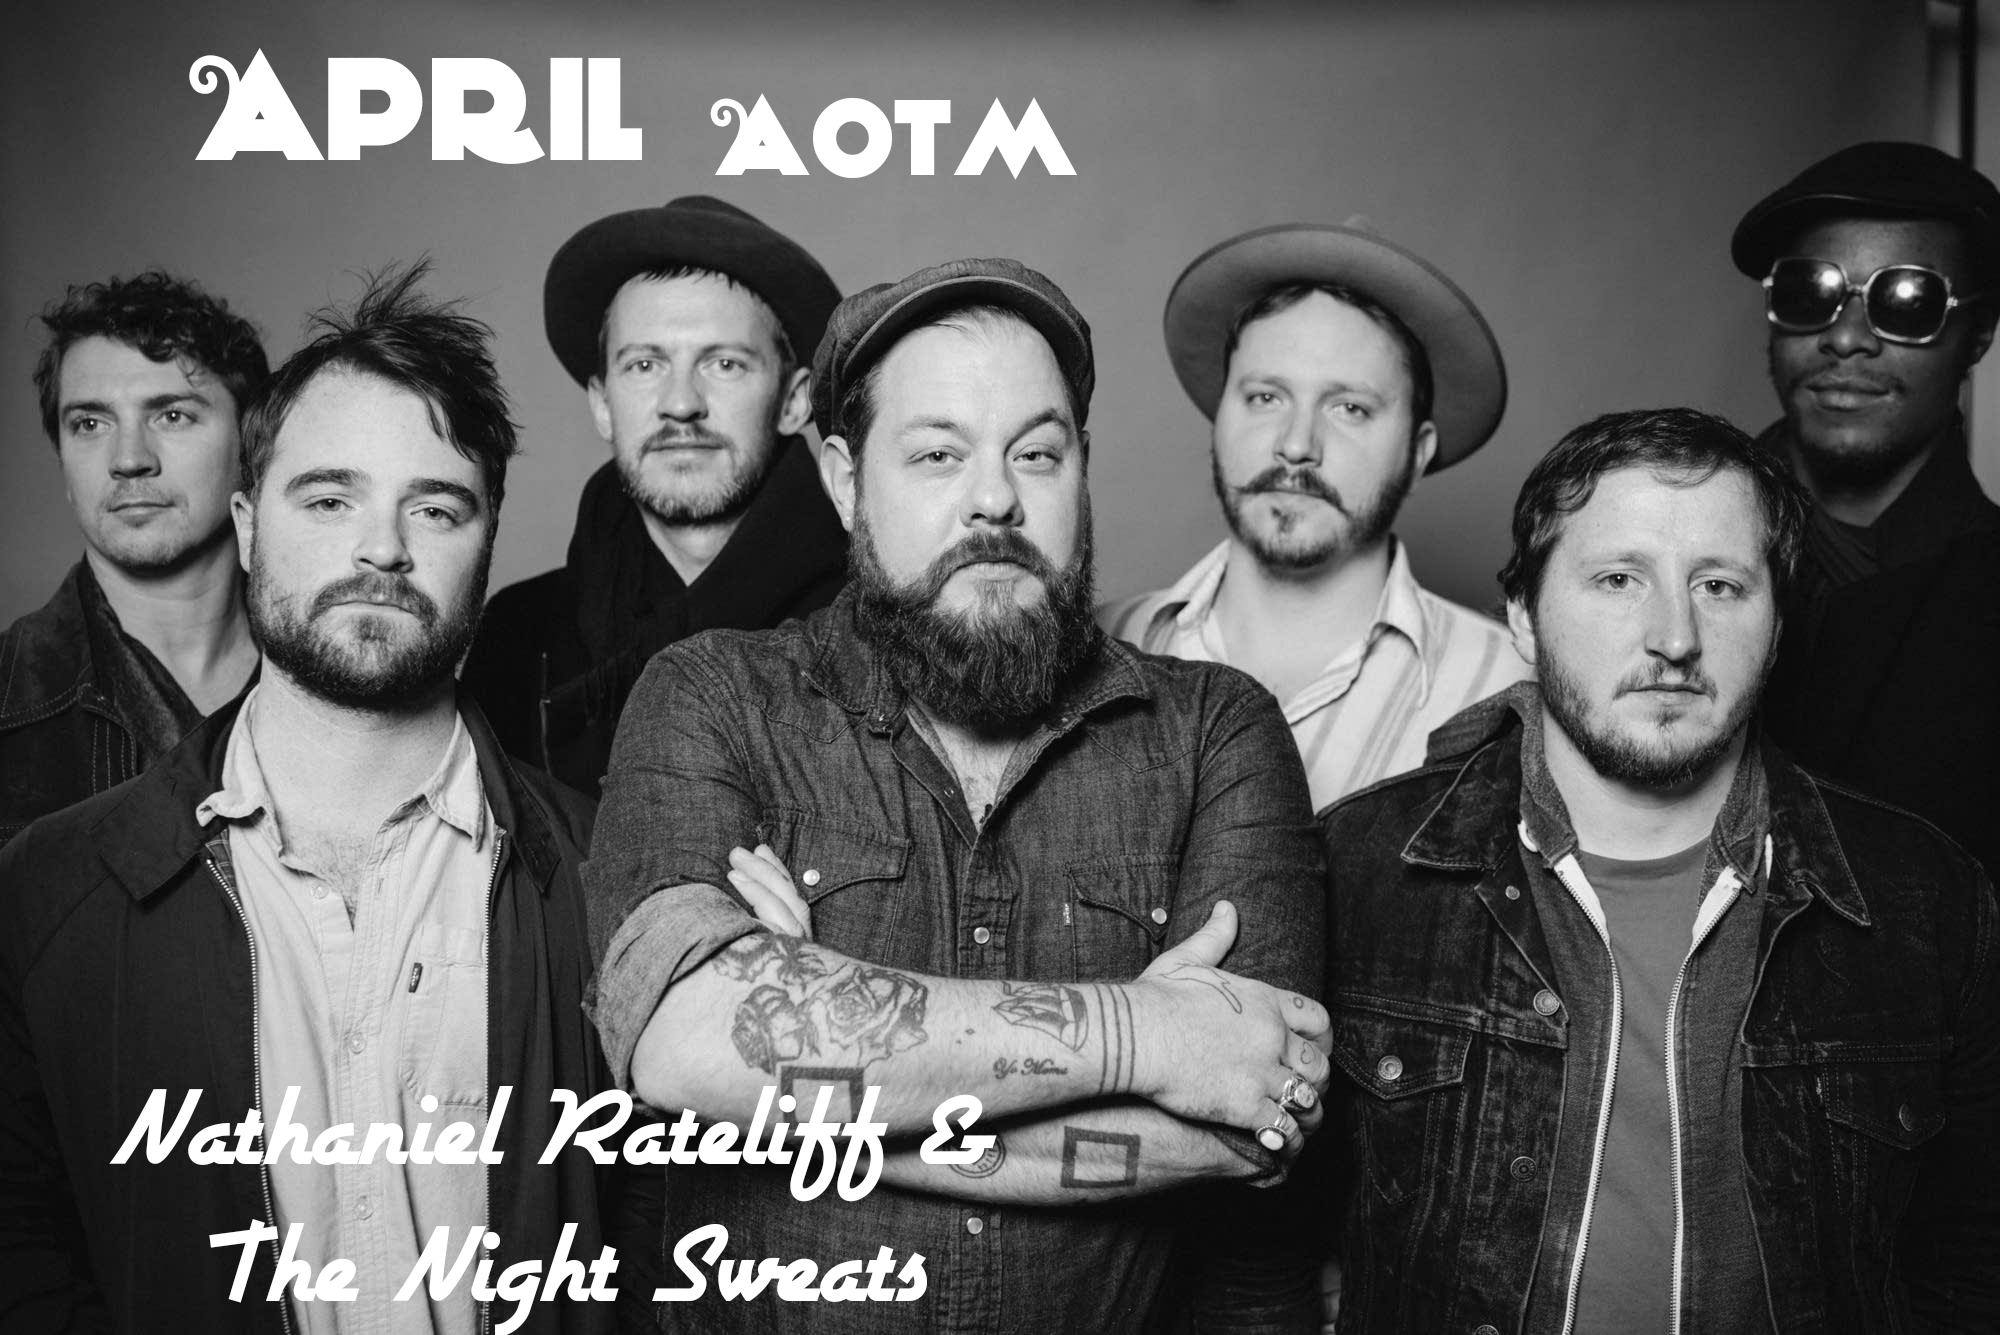 Artist of the Month -- Nathaniel Rateliff & The Night Sweats